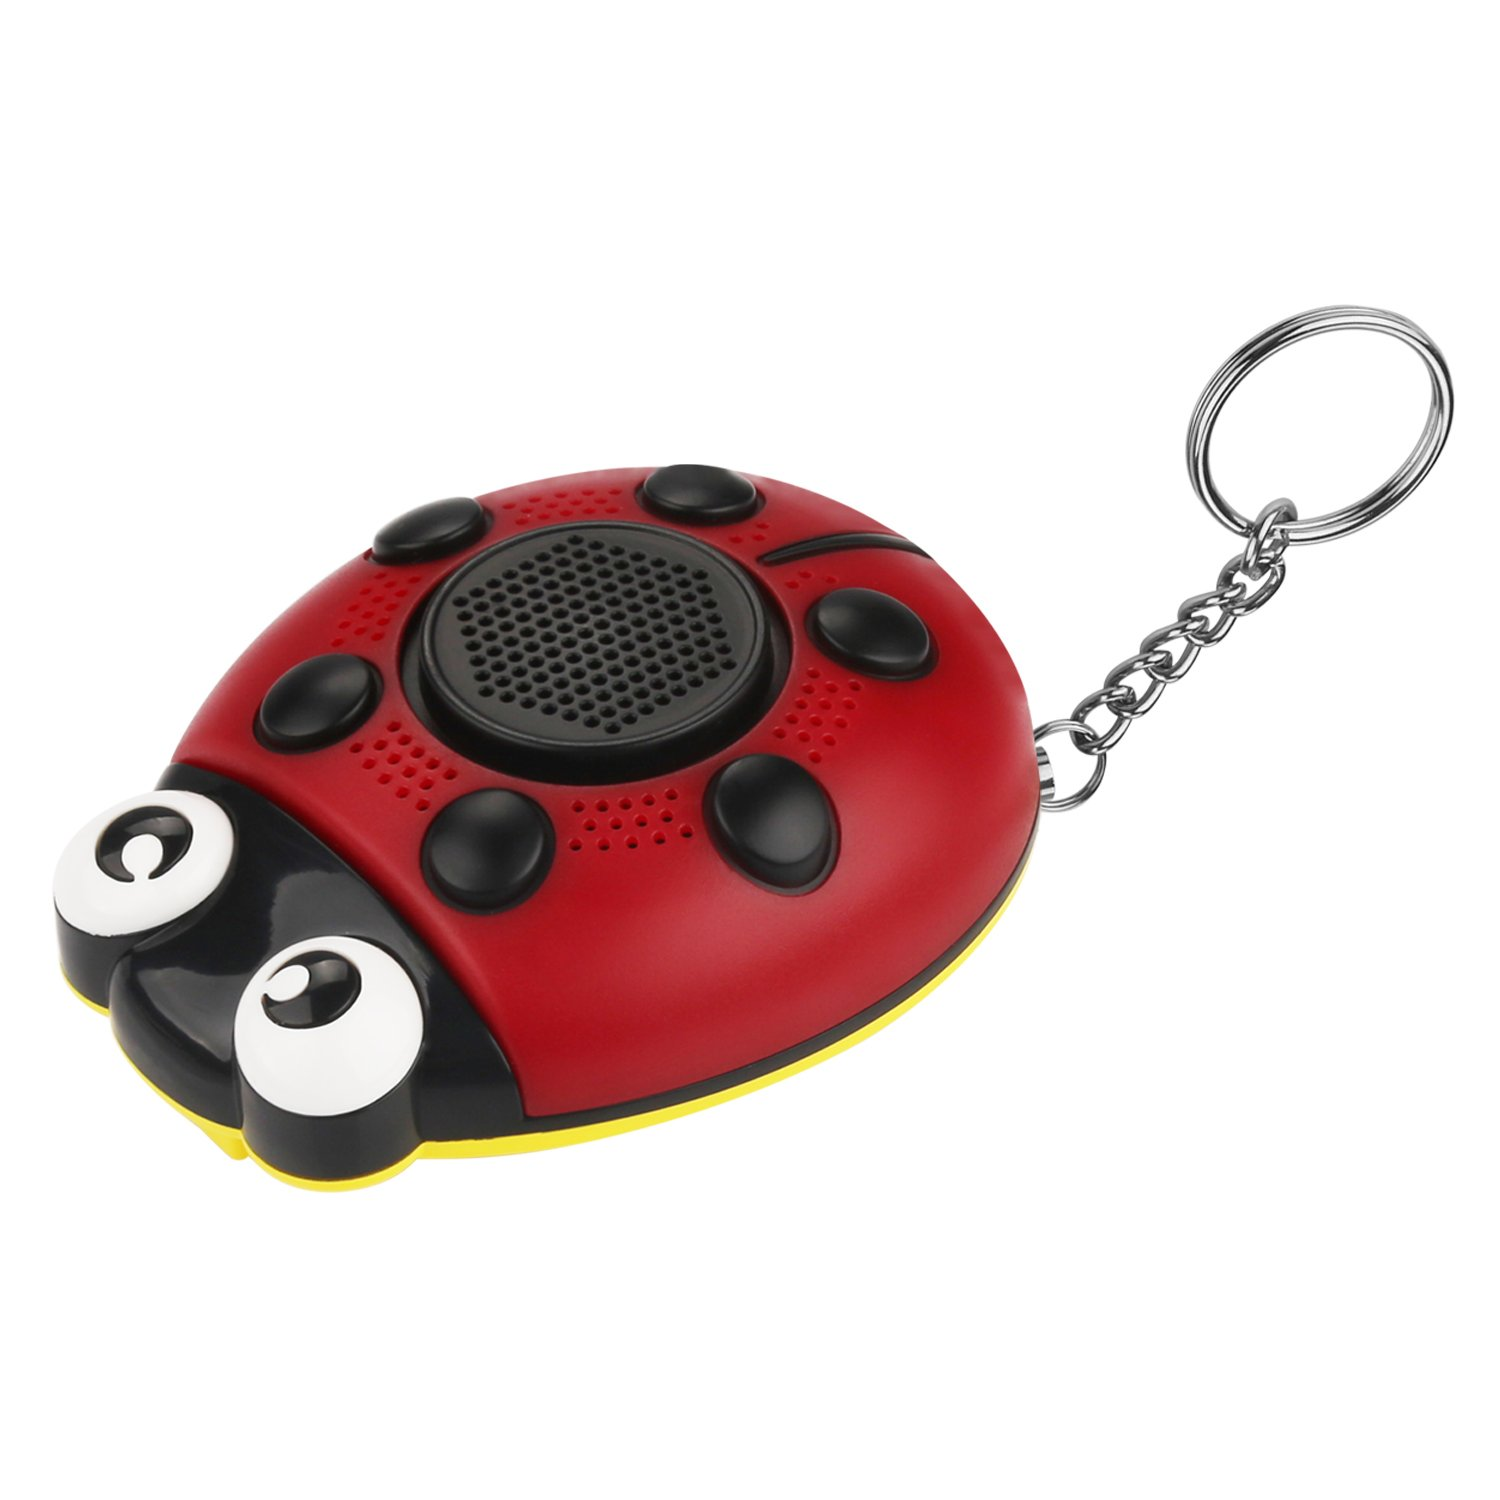 WYAO 130dB person alarm,Siren song SOS Personal Security Alarm could as Self-defense Alarm/Built-in Speaker/Strobe light/flashlight/Hangings with Wrist Strap for kid,women and who works on night